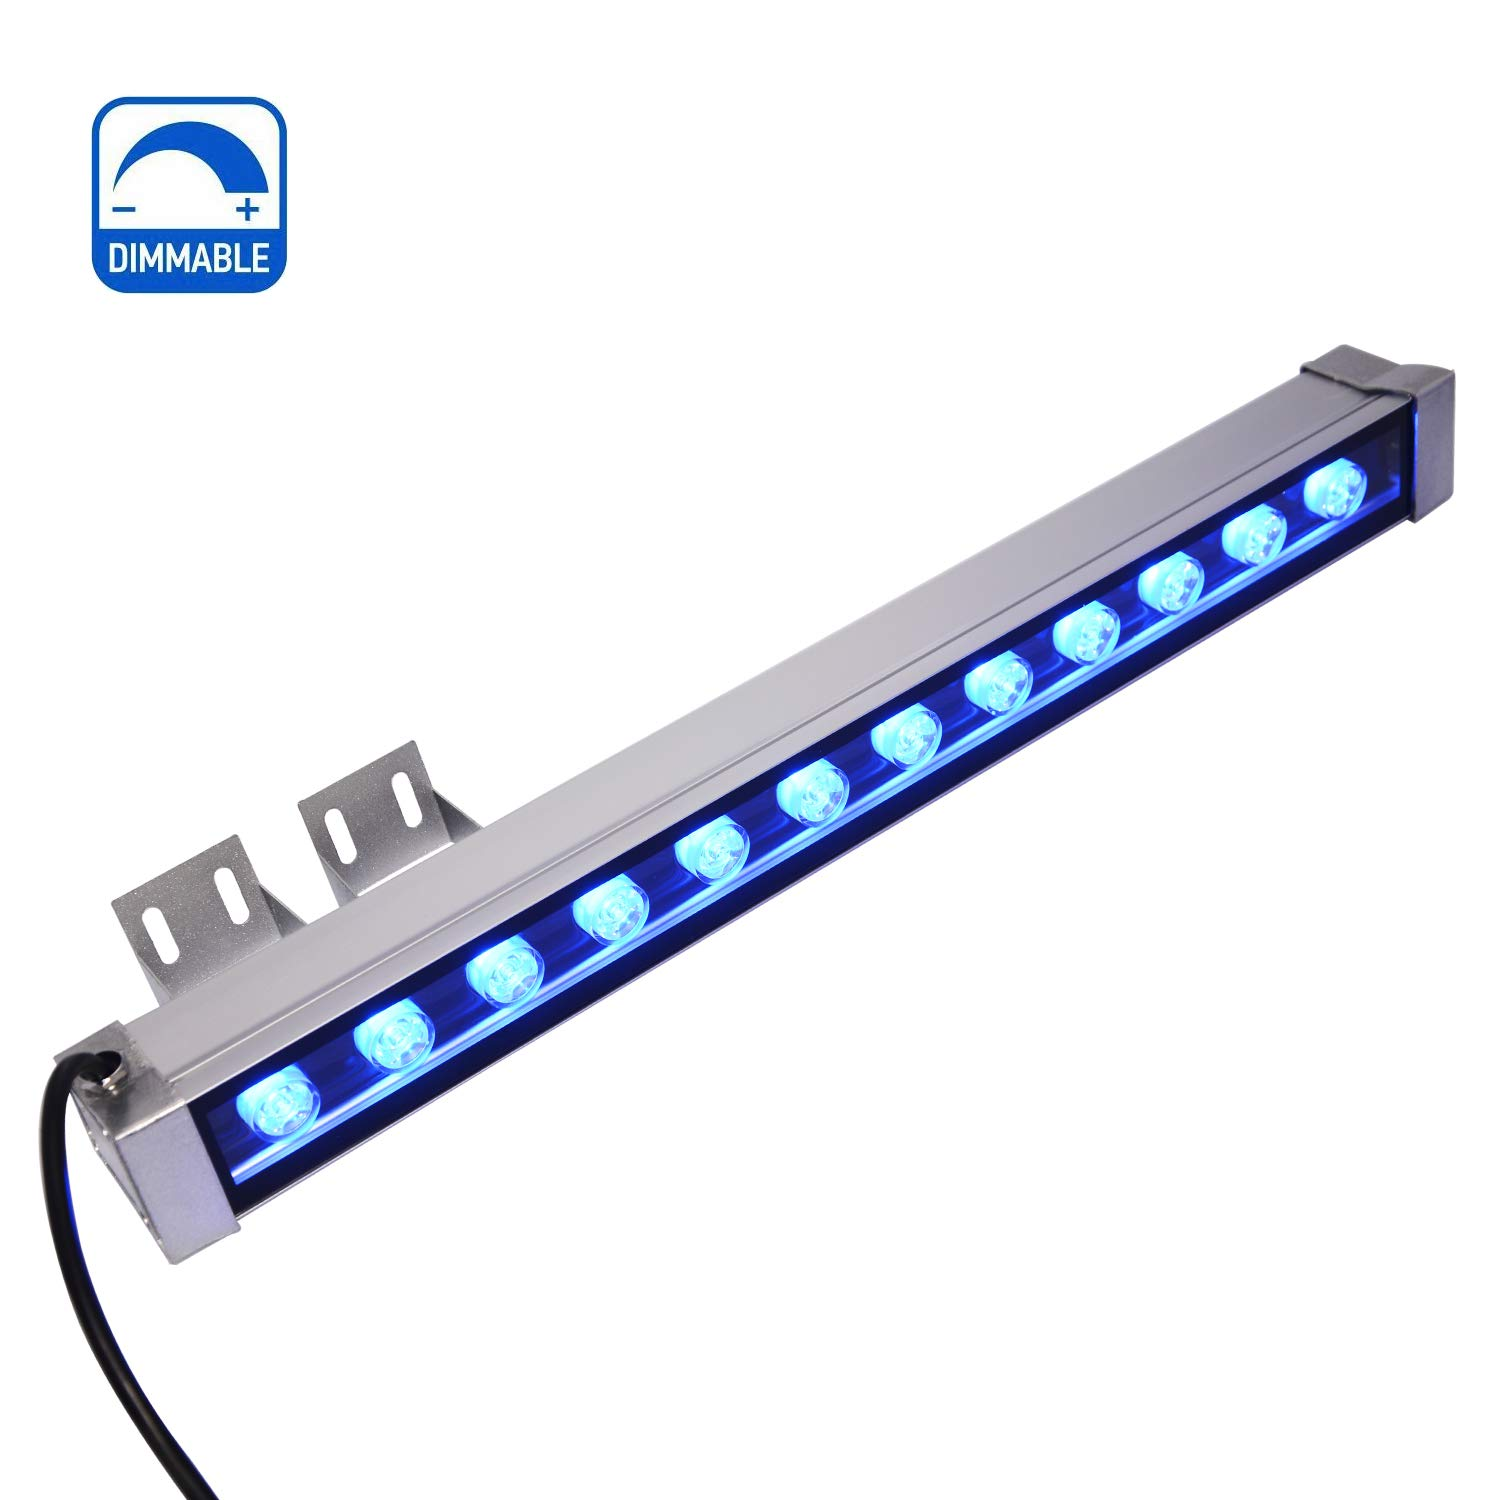 RSN LED Wall Washer Light 12W Dimmable Blue Color DC24V 2 Years Warranty Waterproof Lights for Outdoor Hotel Stadium